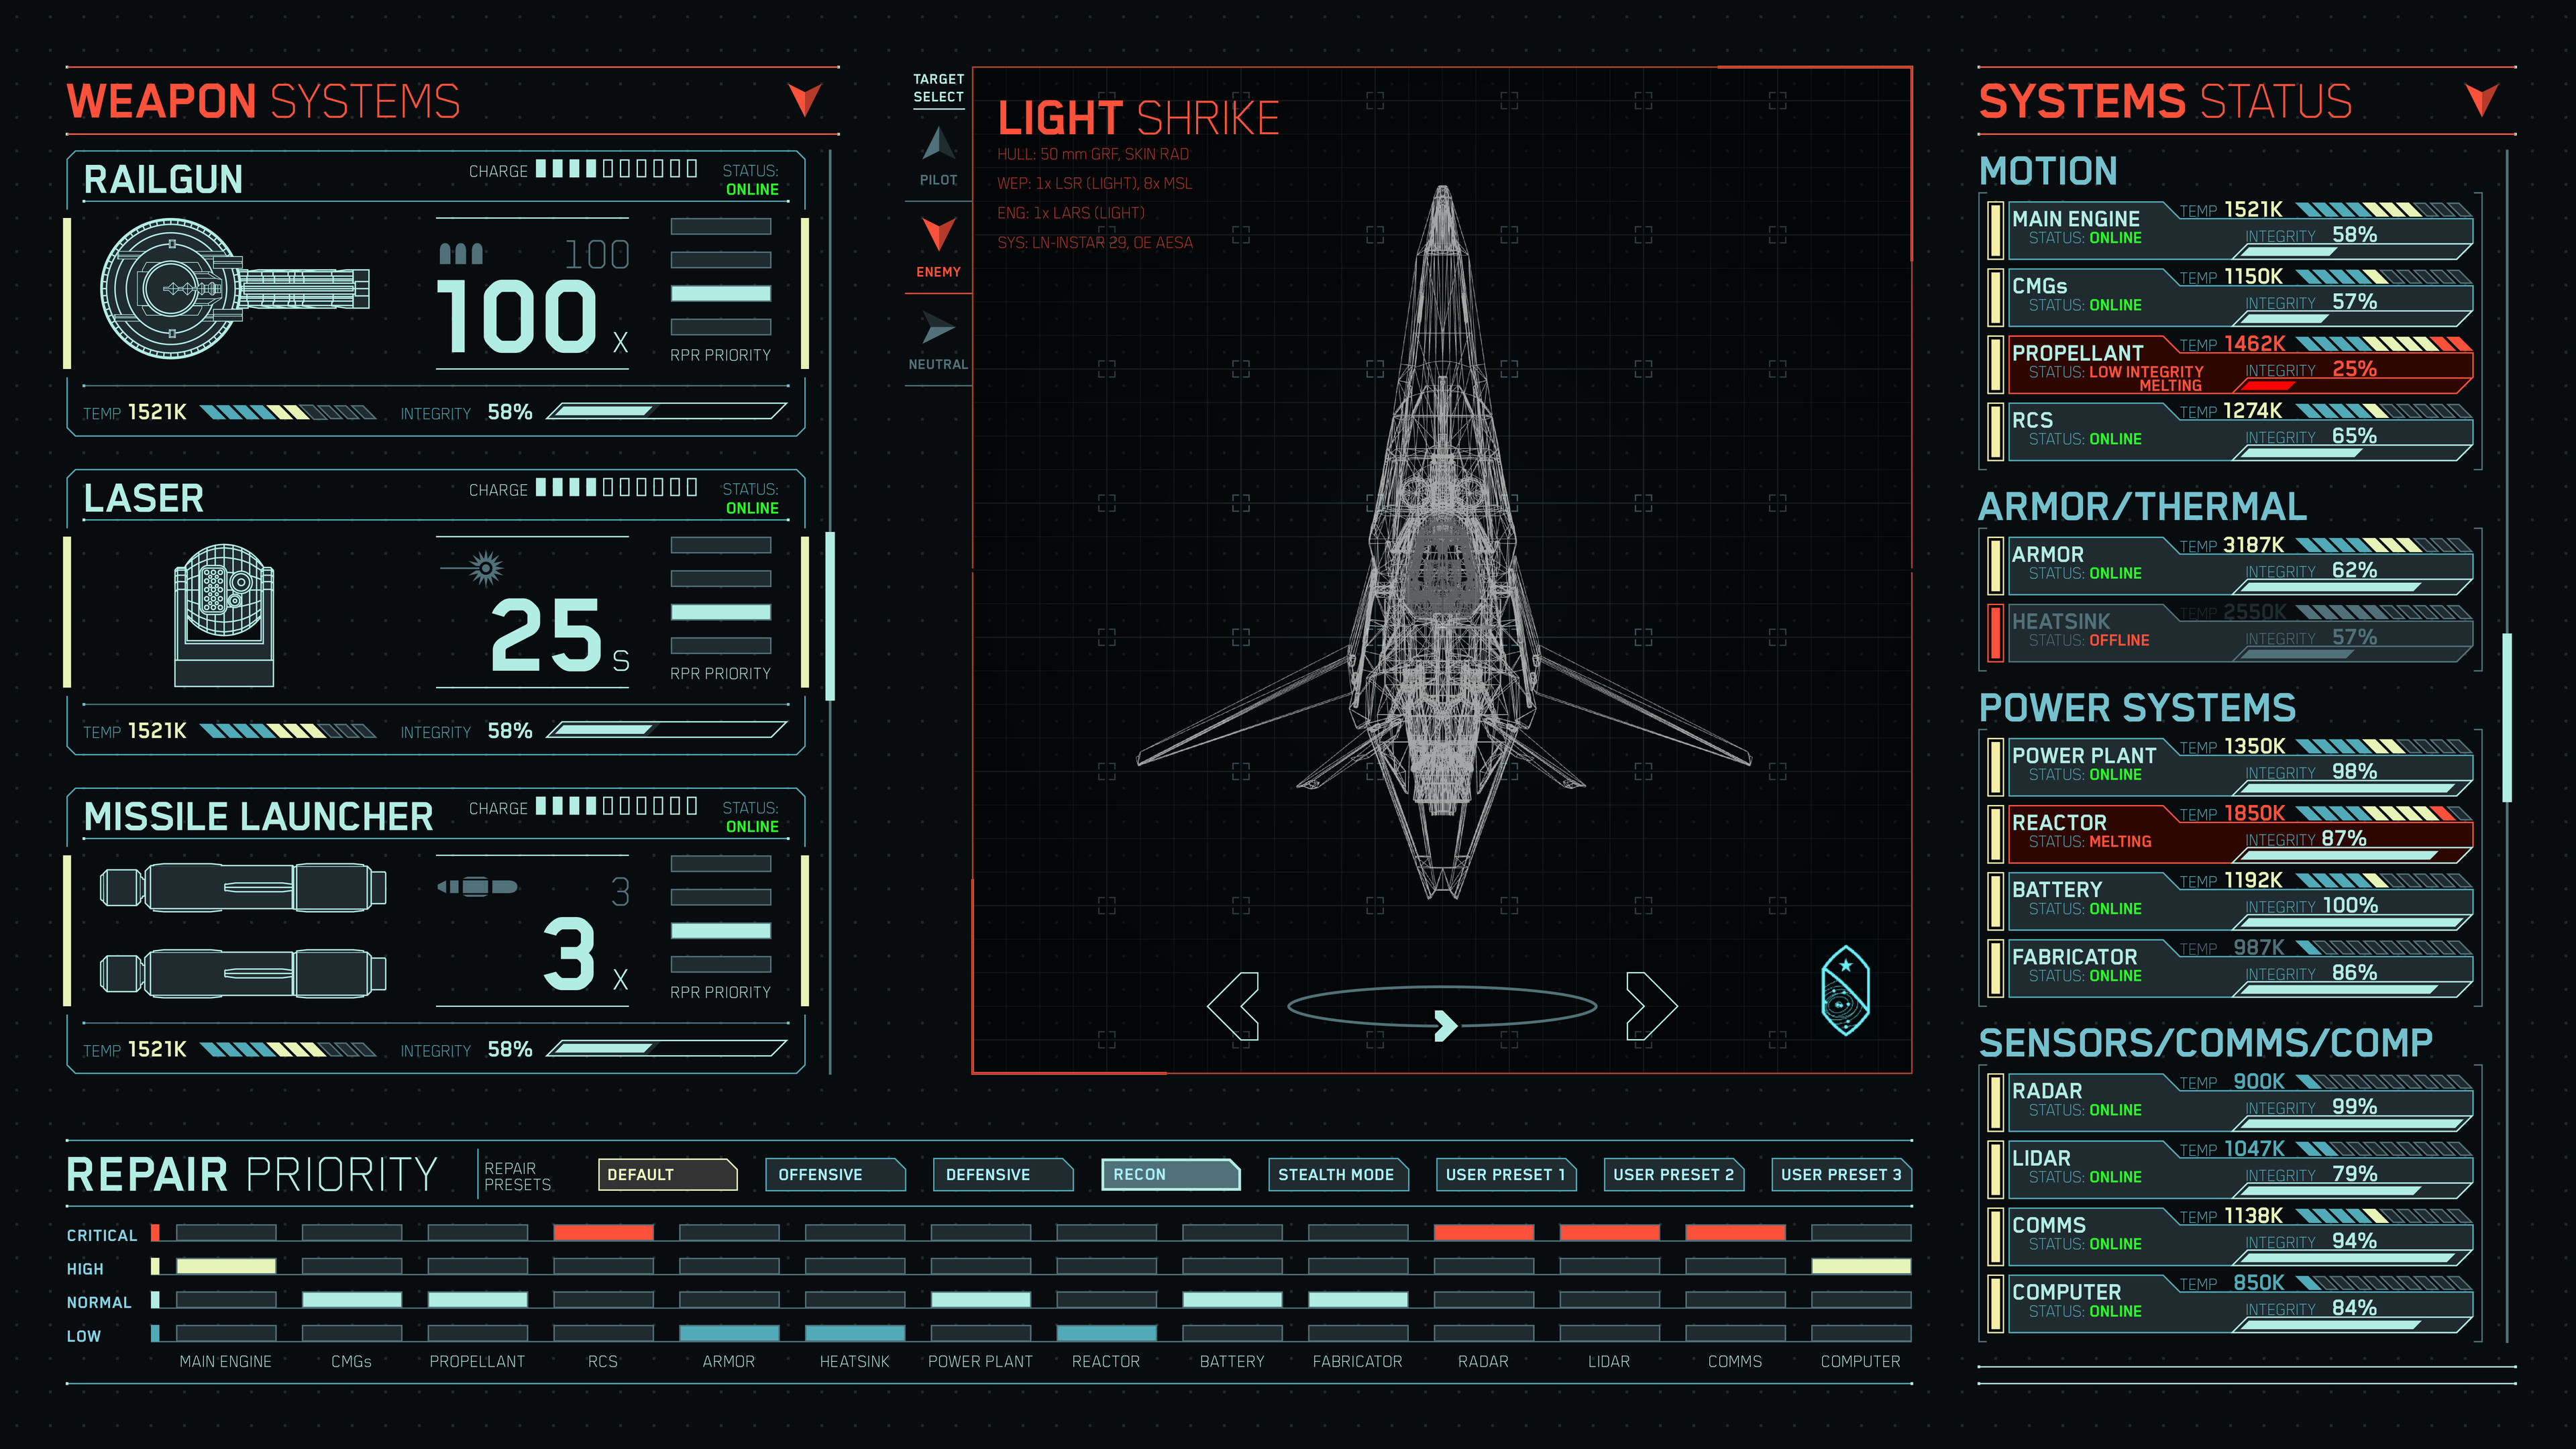 An example of viewing an enemy's systems status. Pilots with the right equipment and scanning level could access enemy ship's systems status and see their strengths/weaknesses.